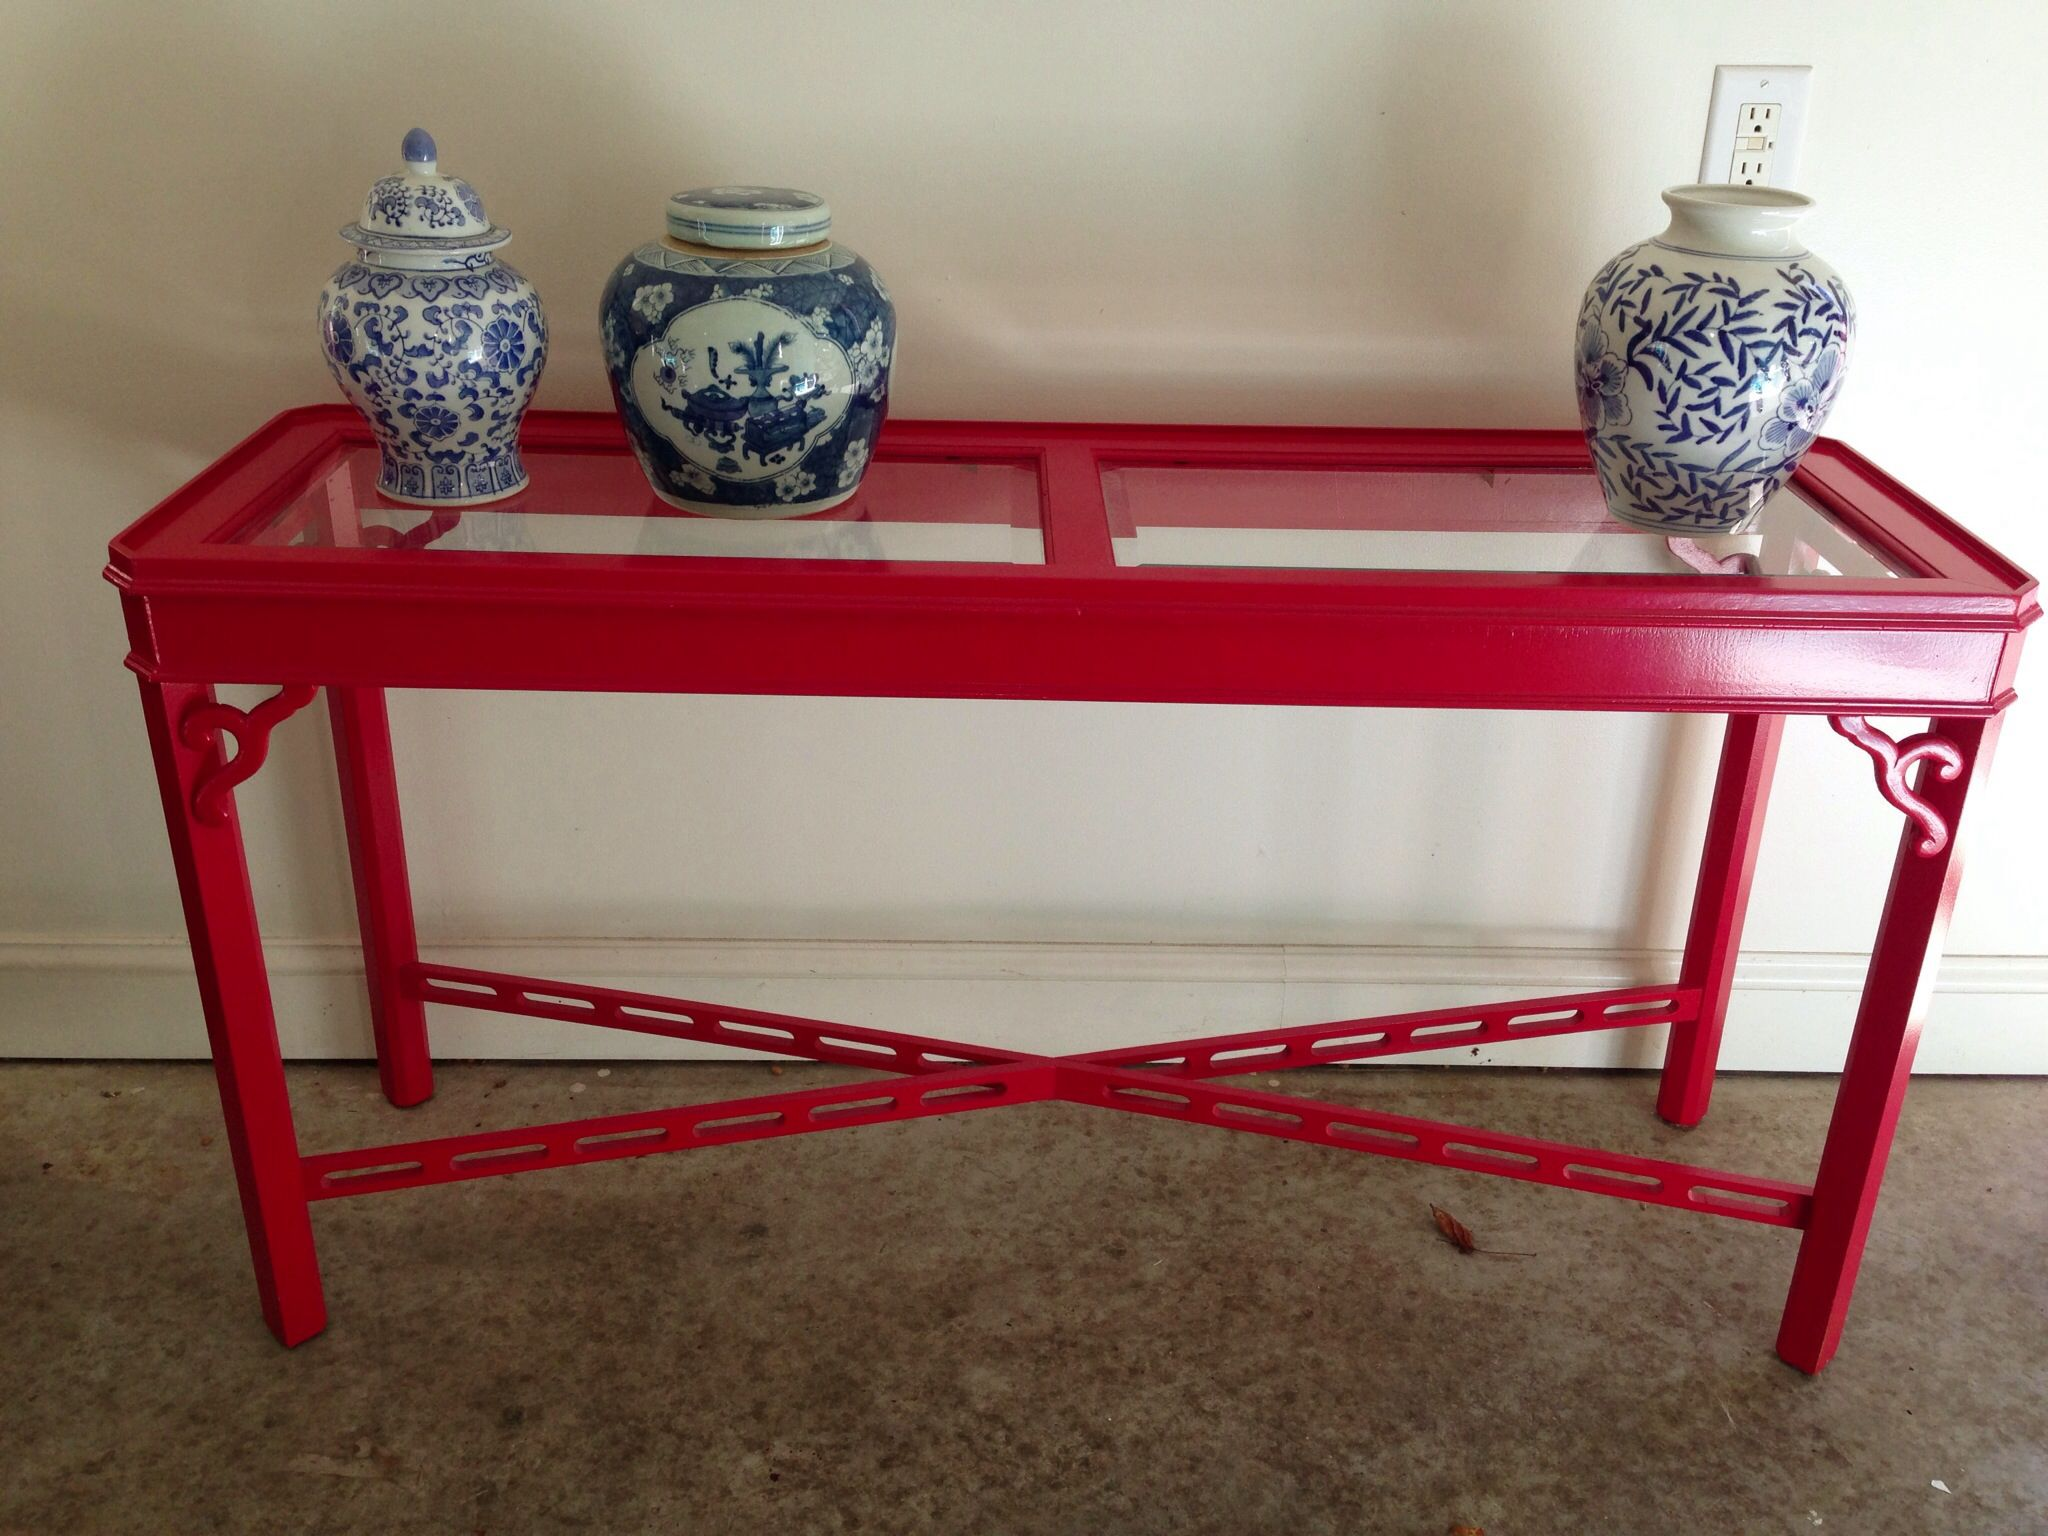 Red High Gloss Painted Sofa Console Table Painted Sofa High